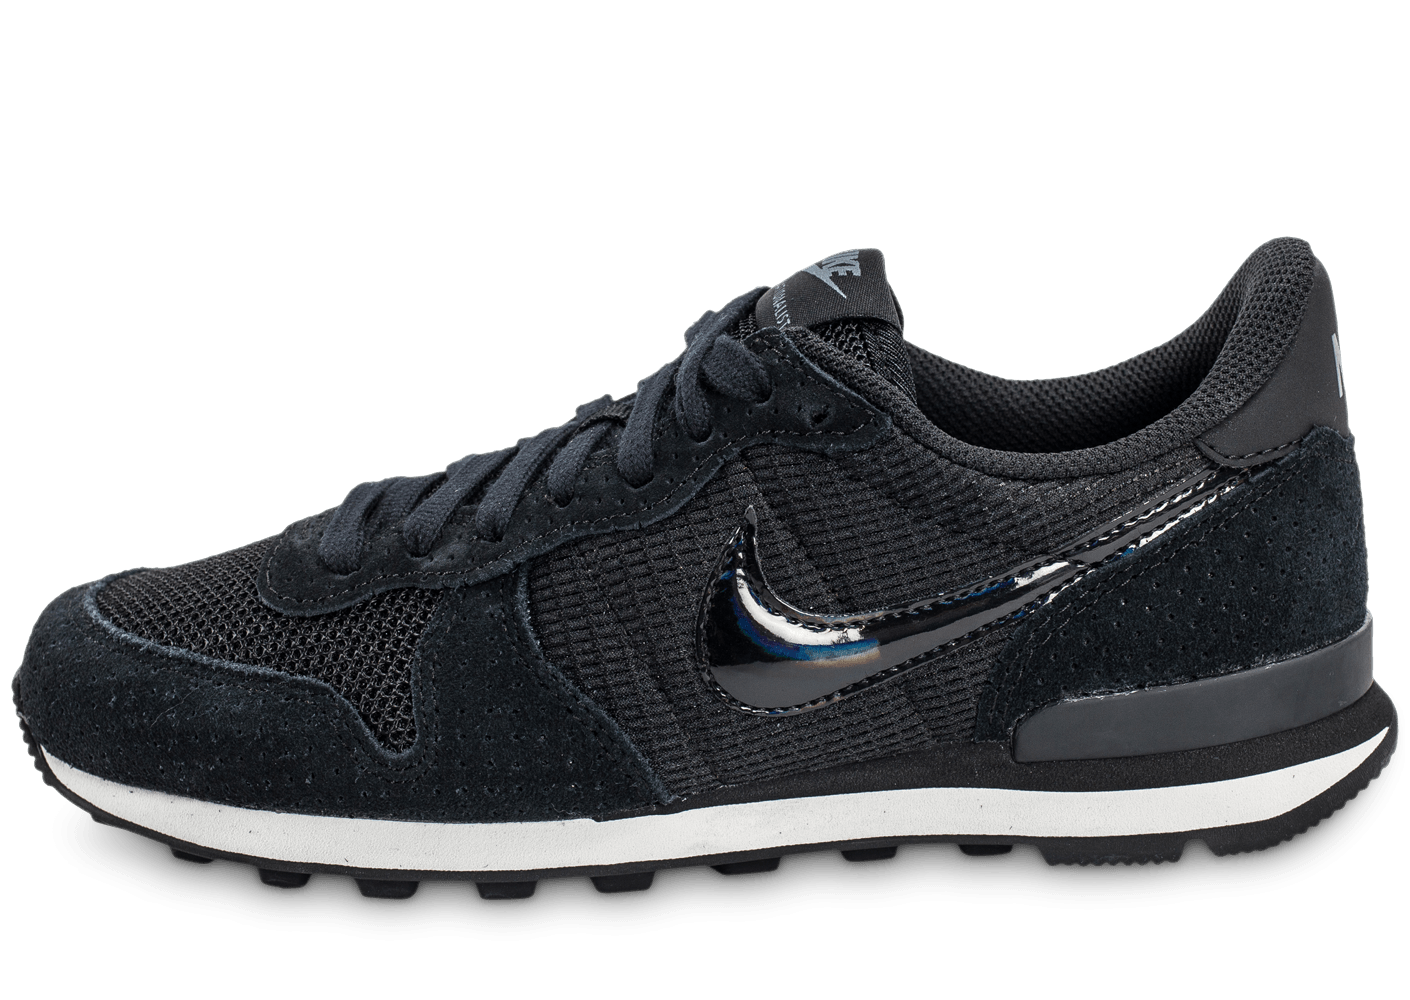 nike internationalist w noire chaussures femme chausport. Black Bedroom Furniture Sets. Home Design Ideas